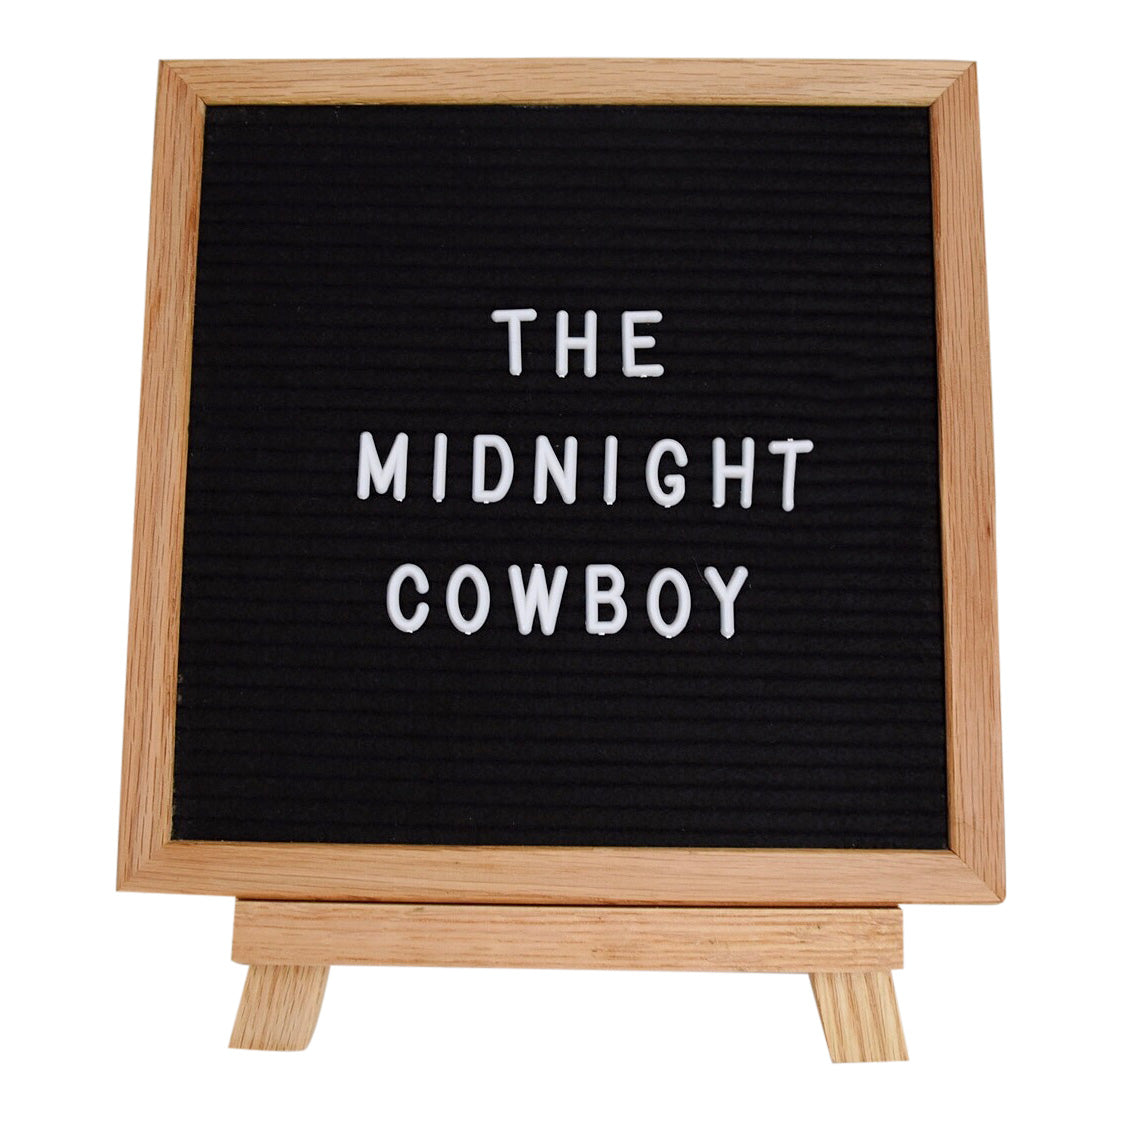 The Midnight Cowboy